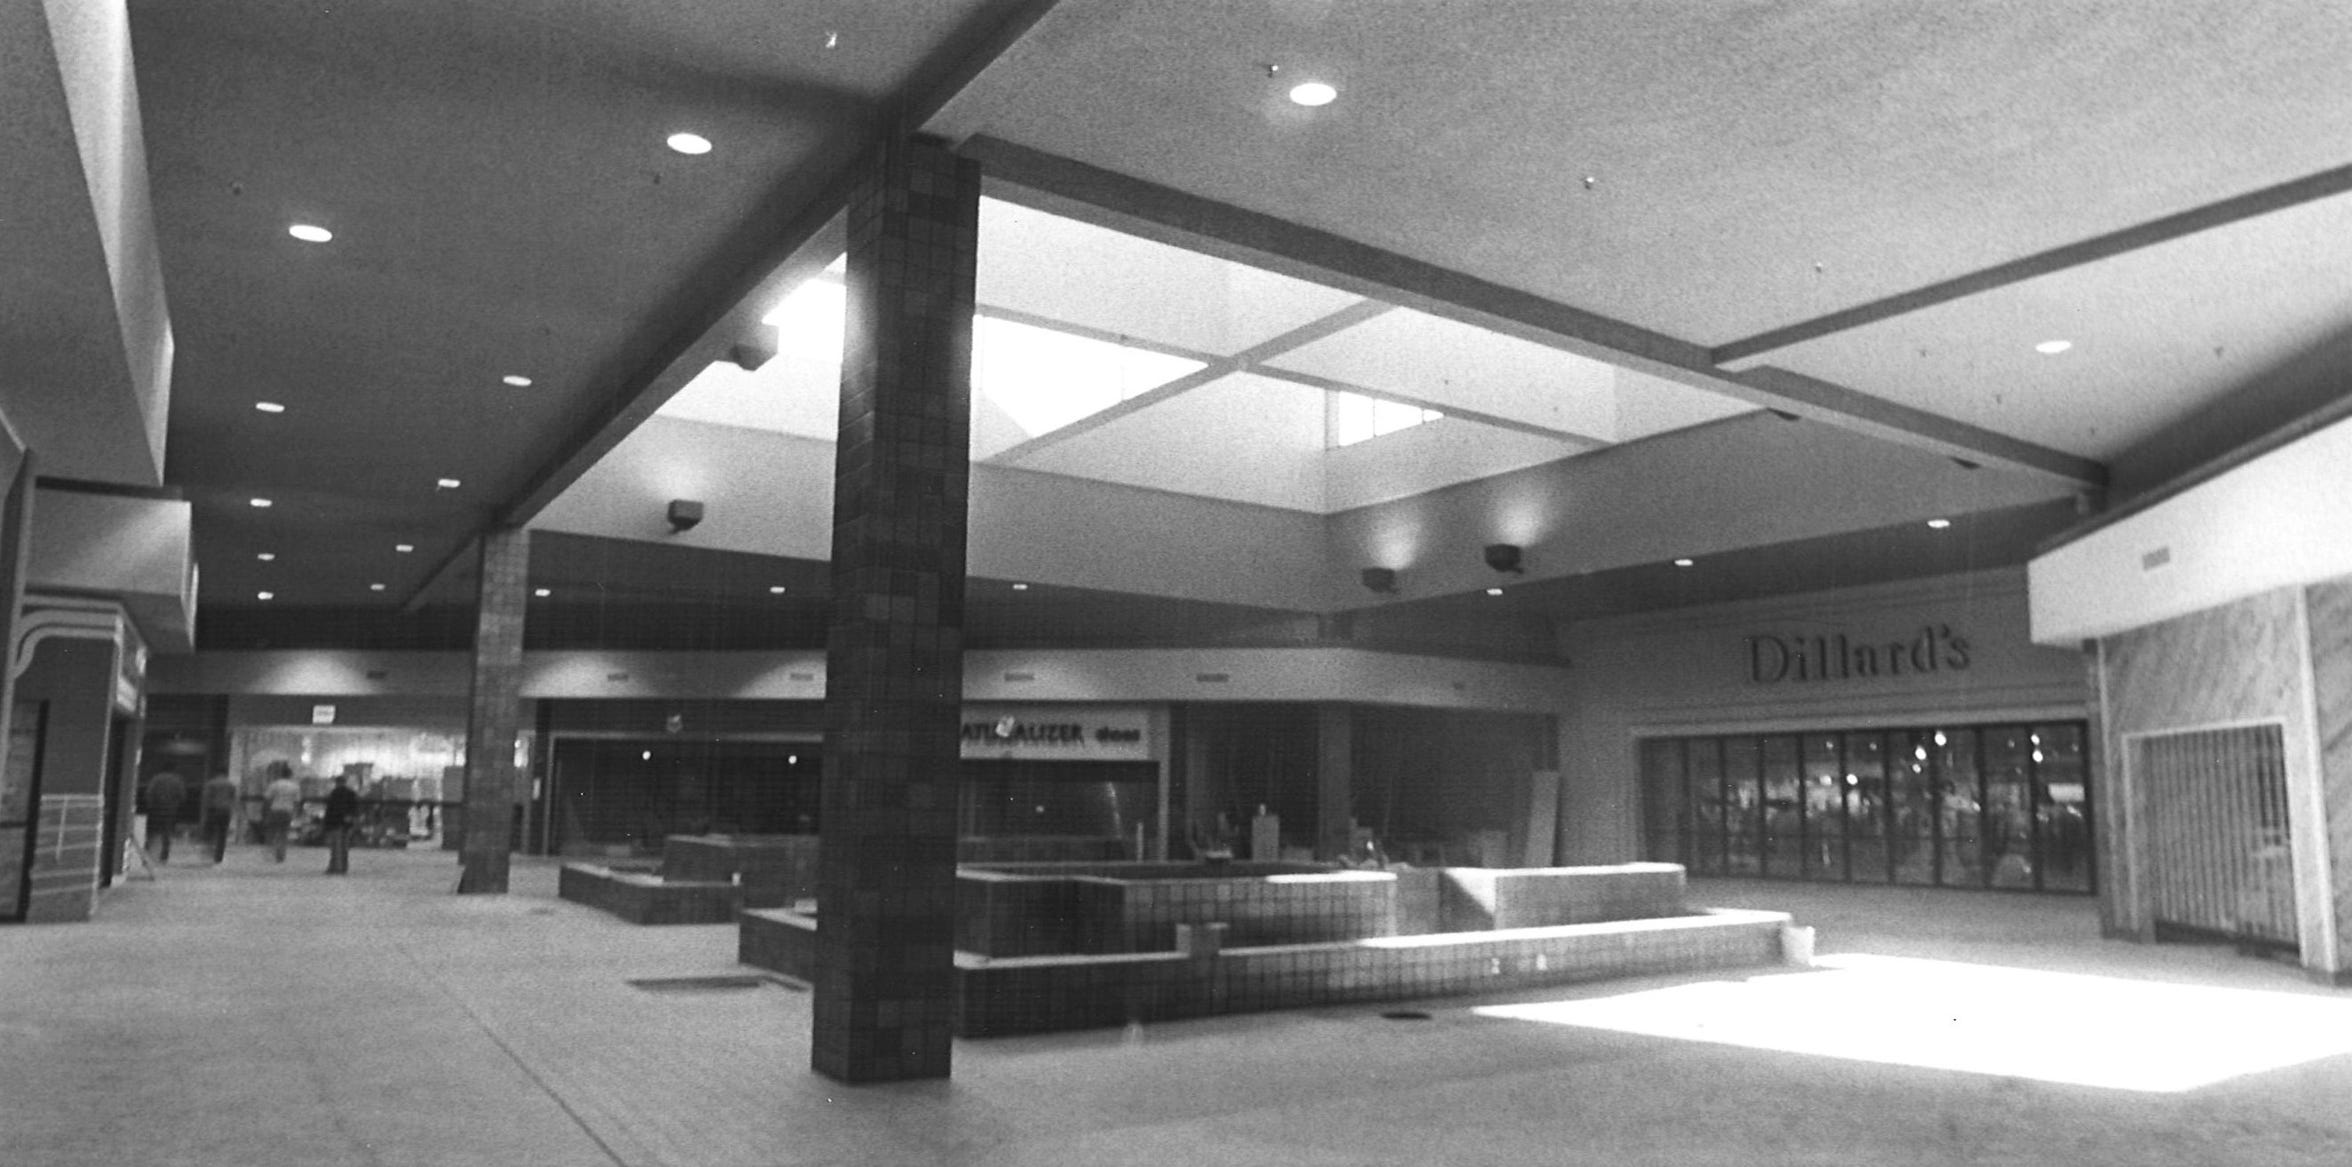 The Dillard's courtyard before the retailer split into two stores.